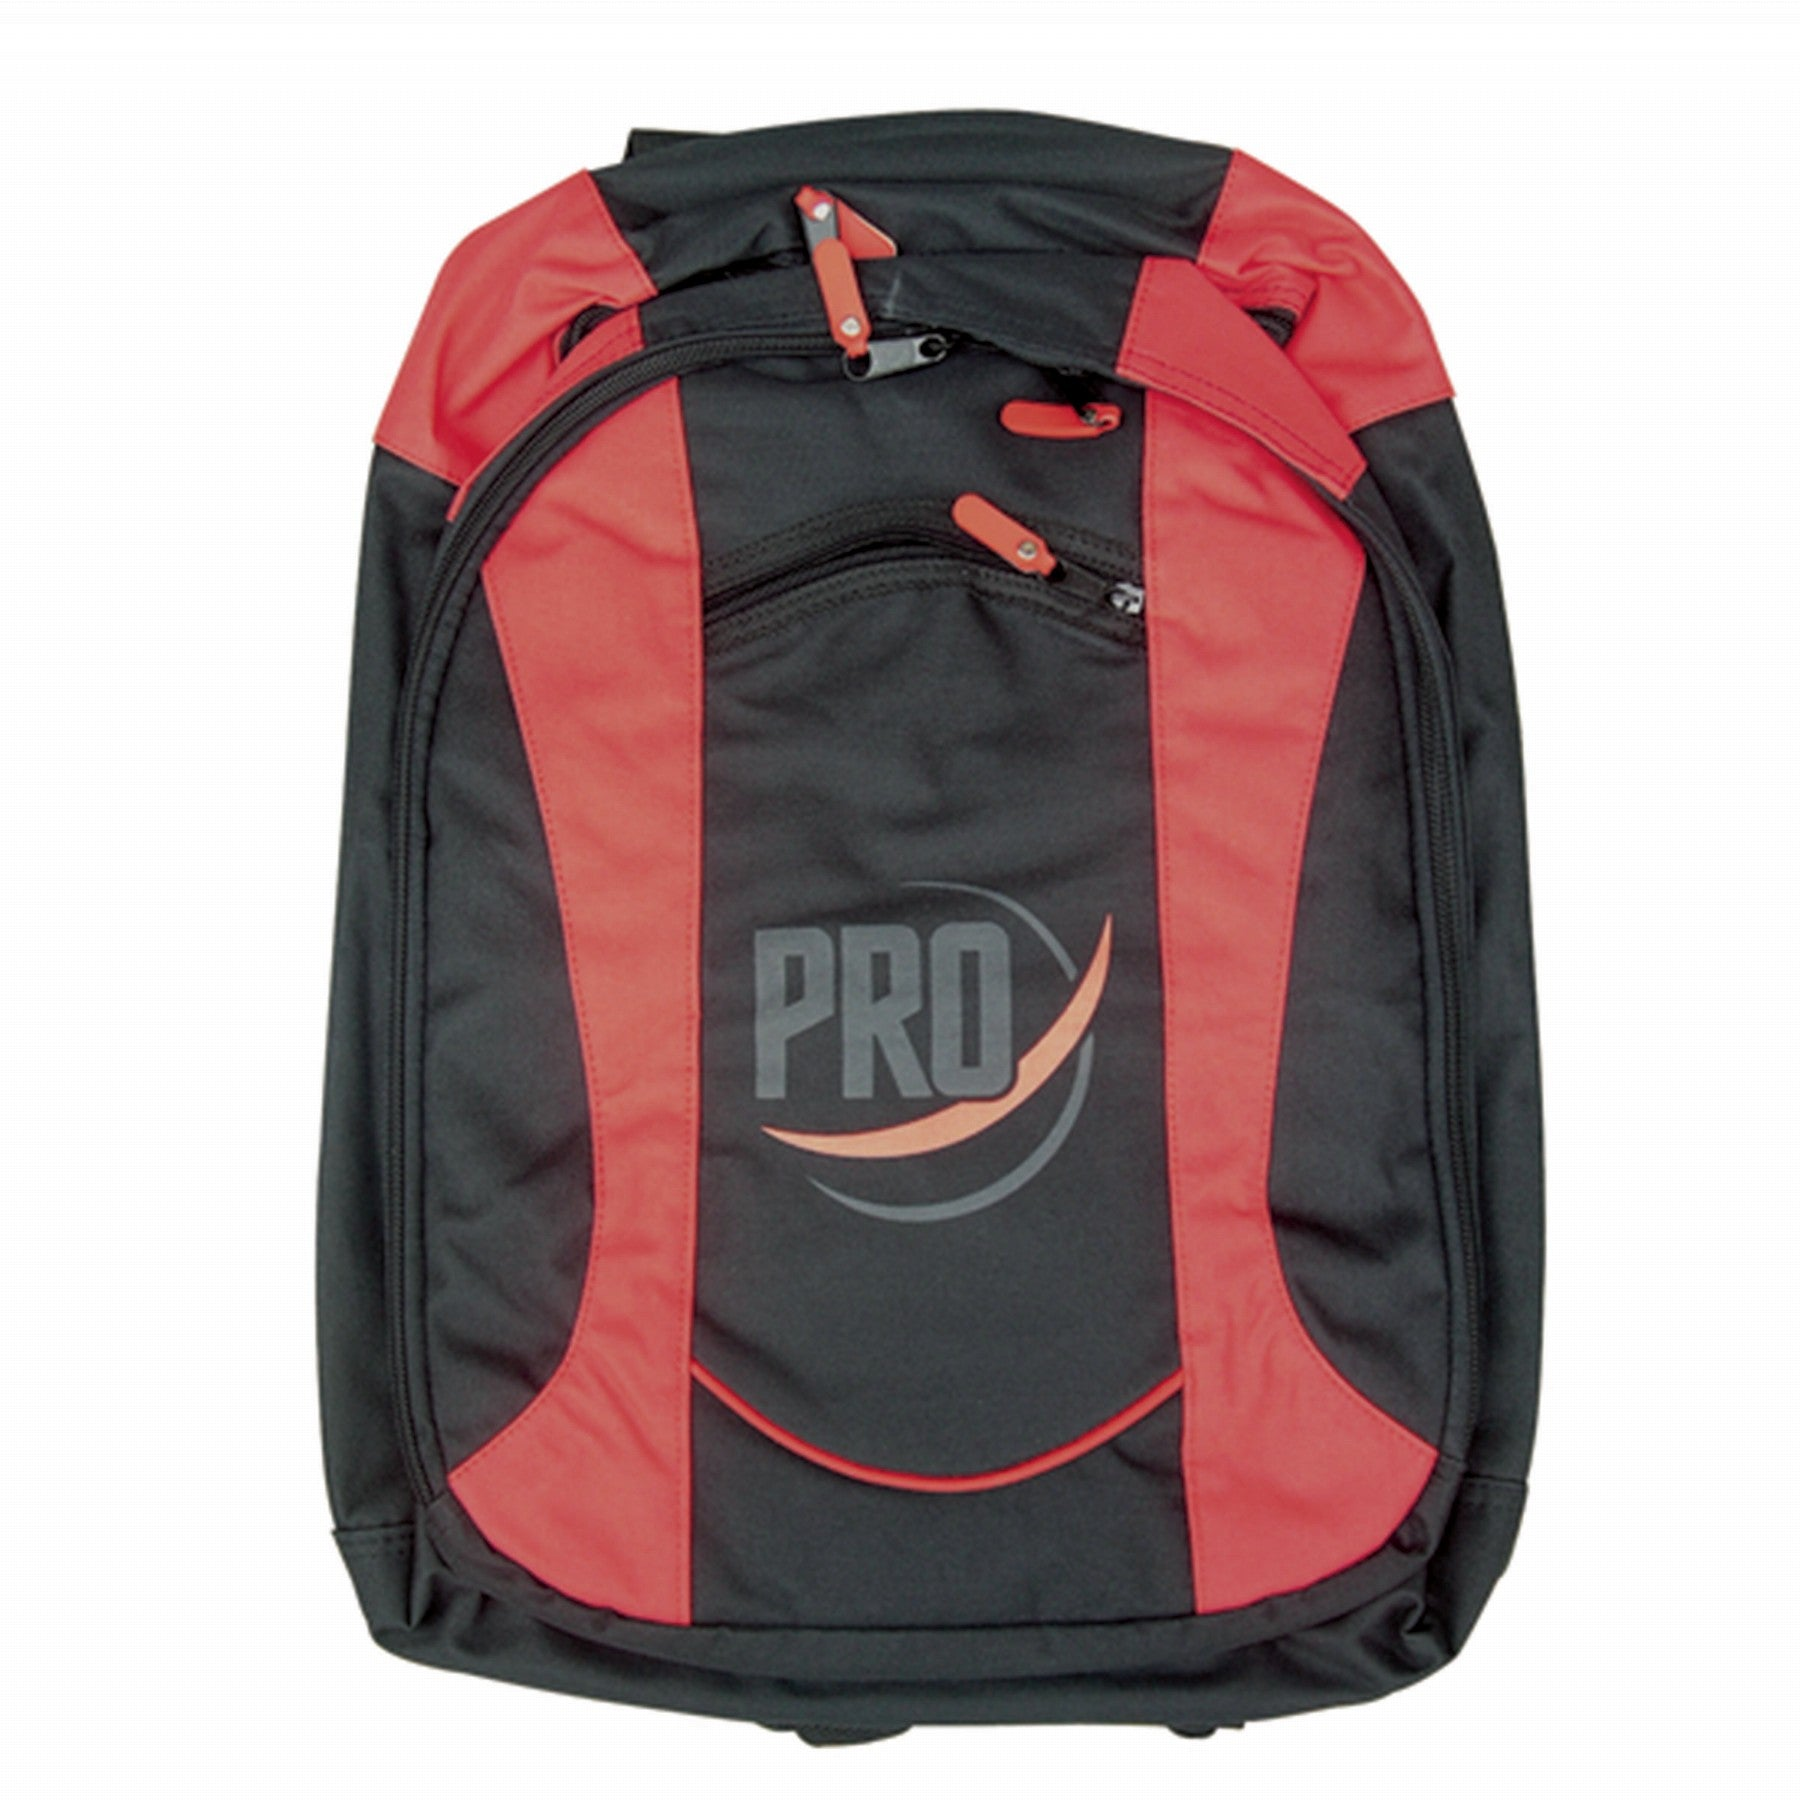 Protecta Back Pack (For Fall Protection Kit)